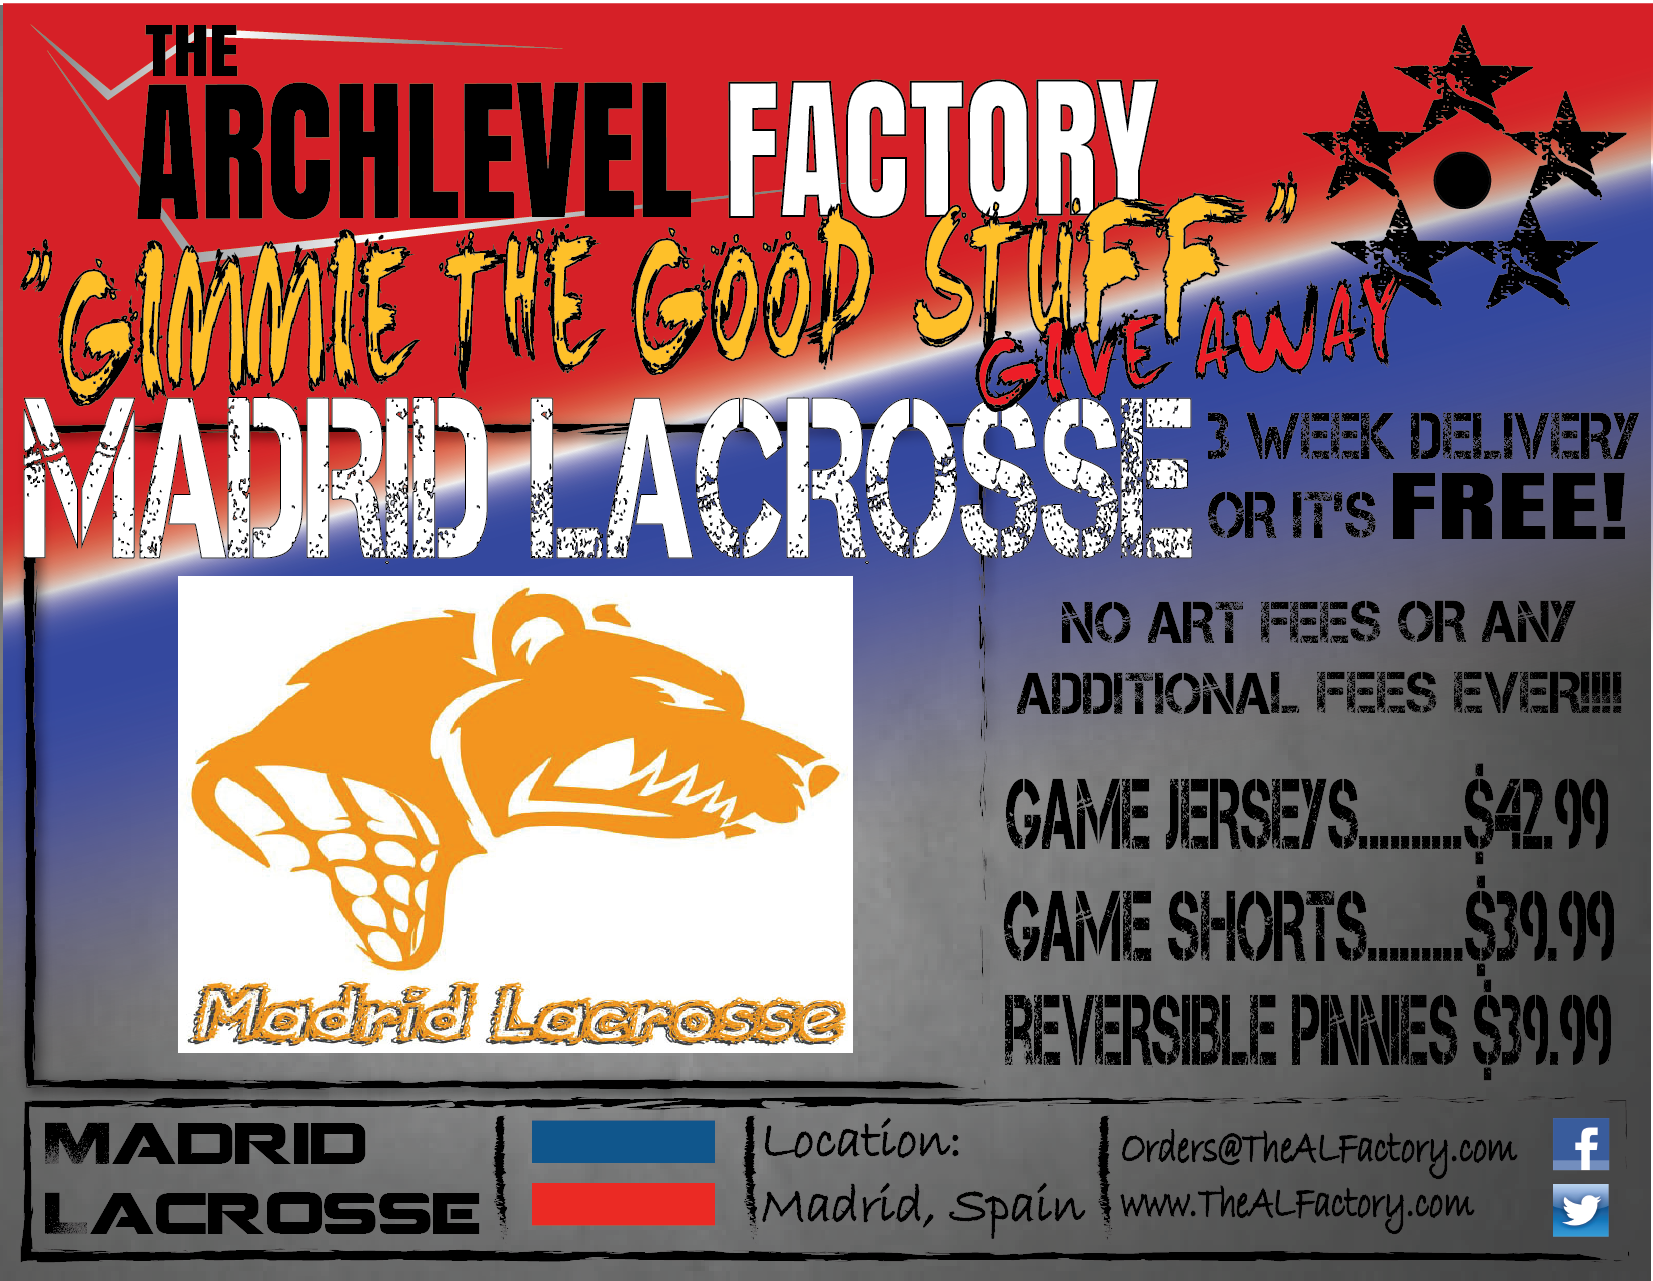 Madrid Lacrosse